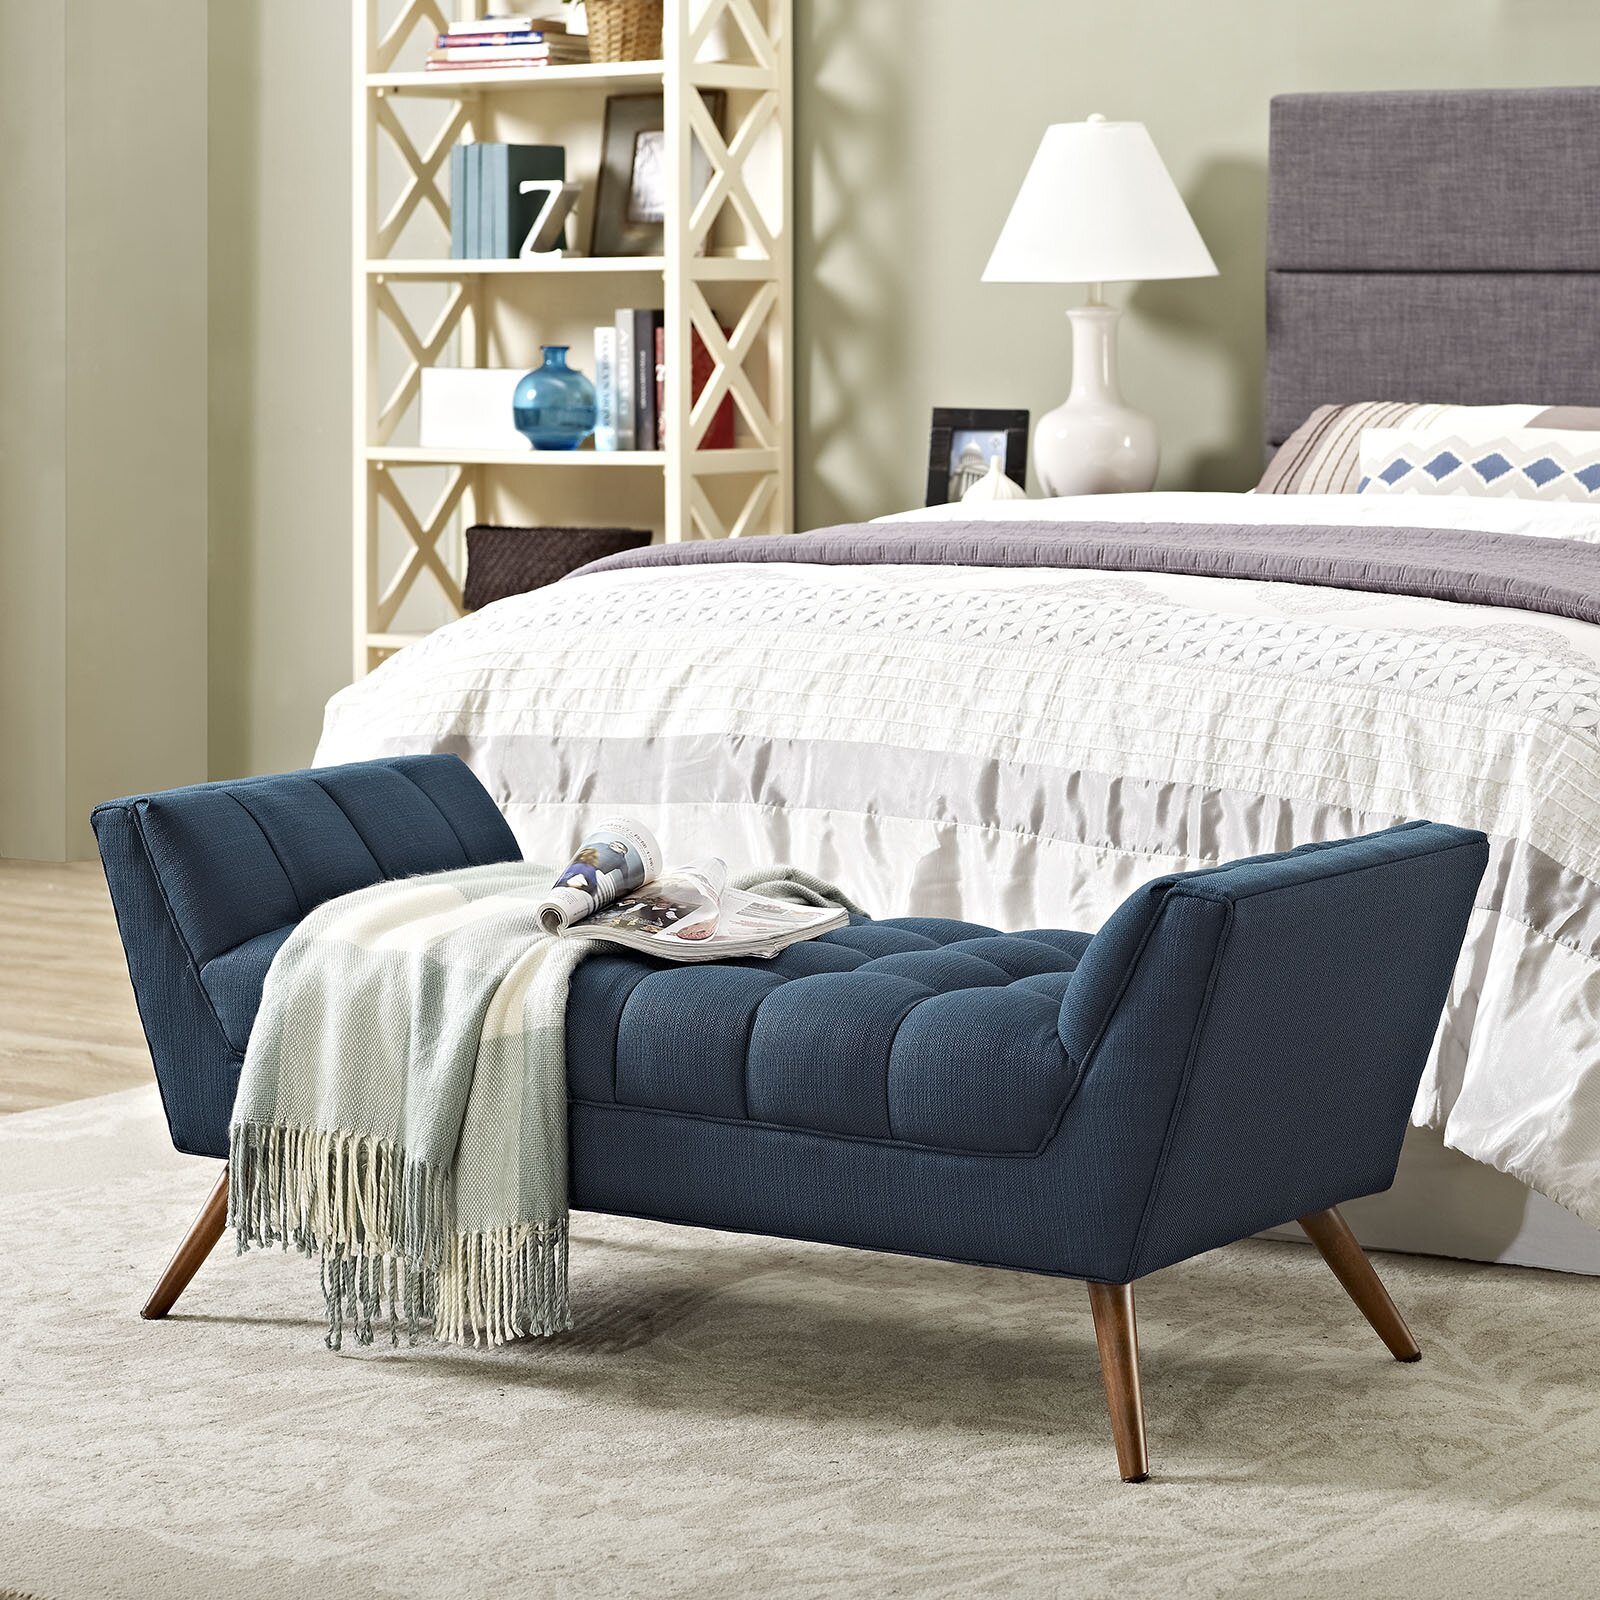 upholstered bedroom bench modway response upholstered bedroom bench amp reviews wayfair 13695